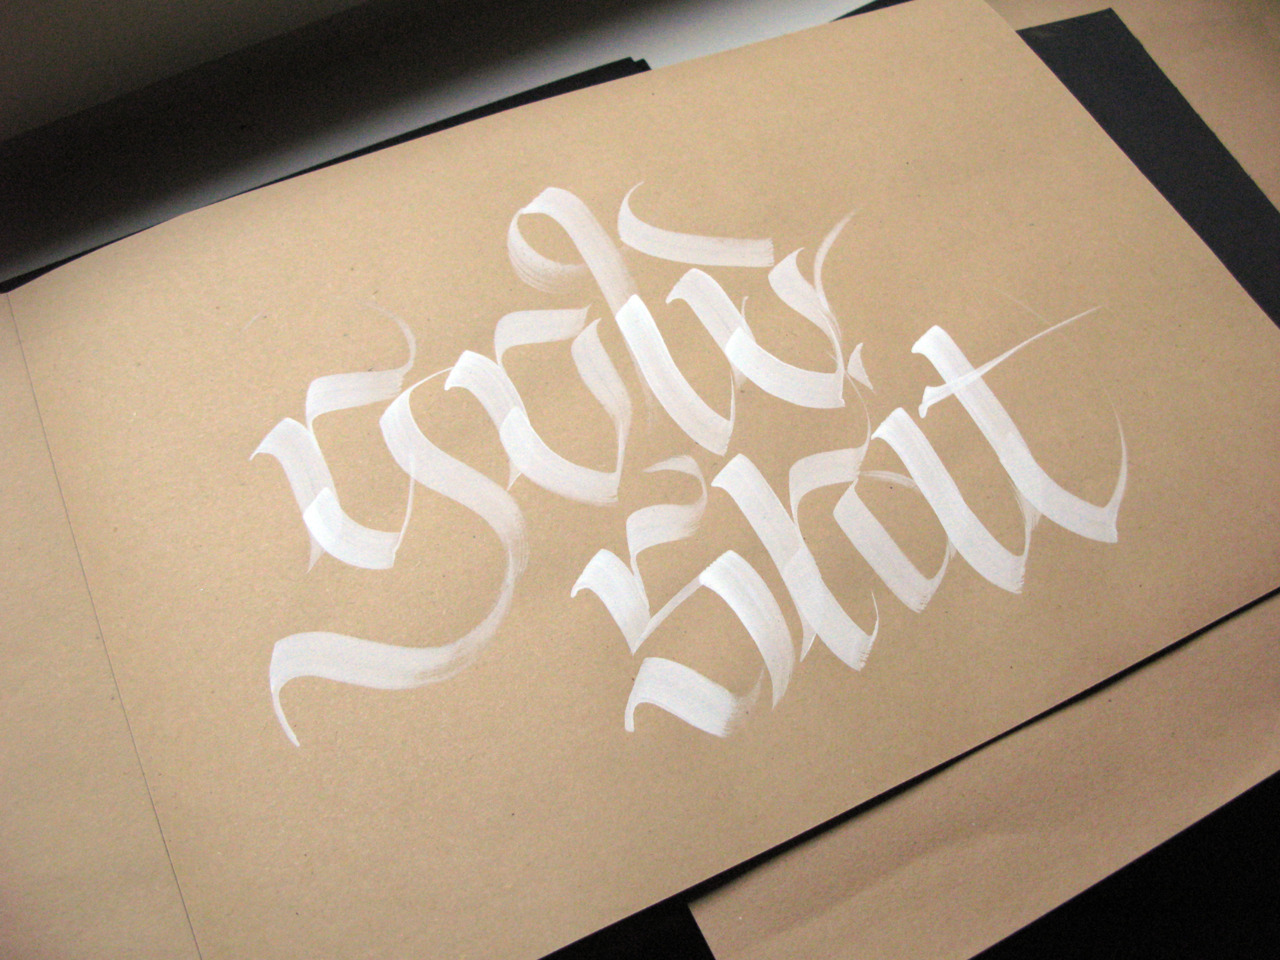 Calligraphi.ca - Gold Shit - White Tempera, Flat Brush on craft paper - Giuseppe Salerno